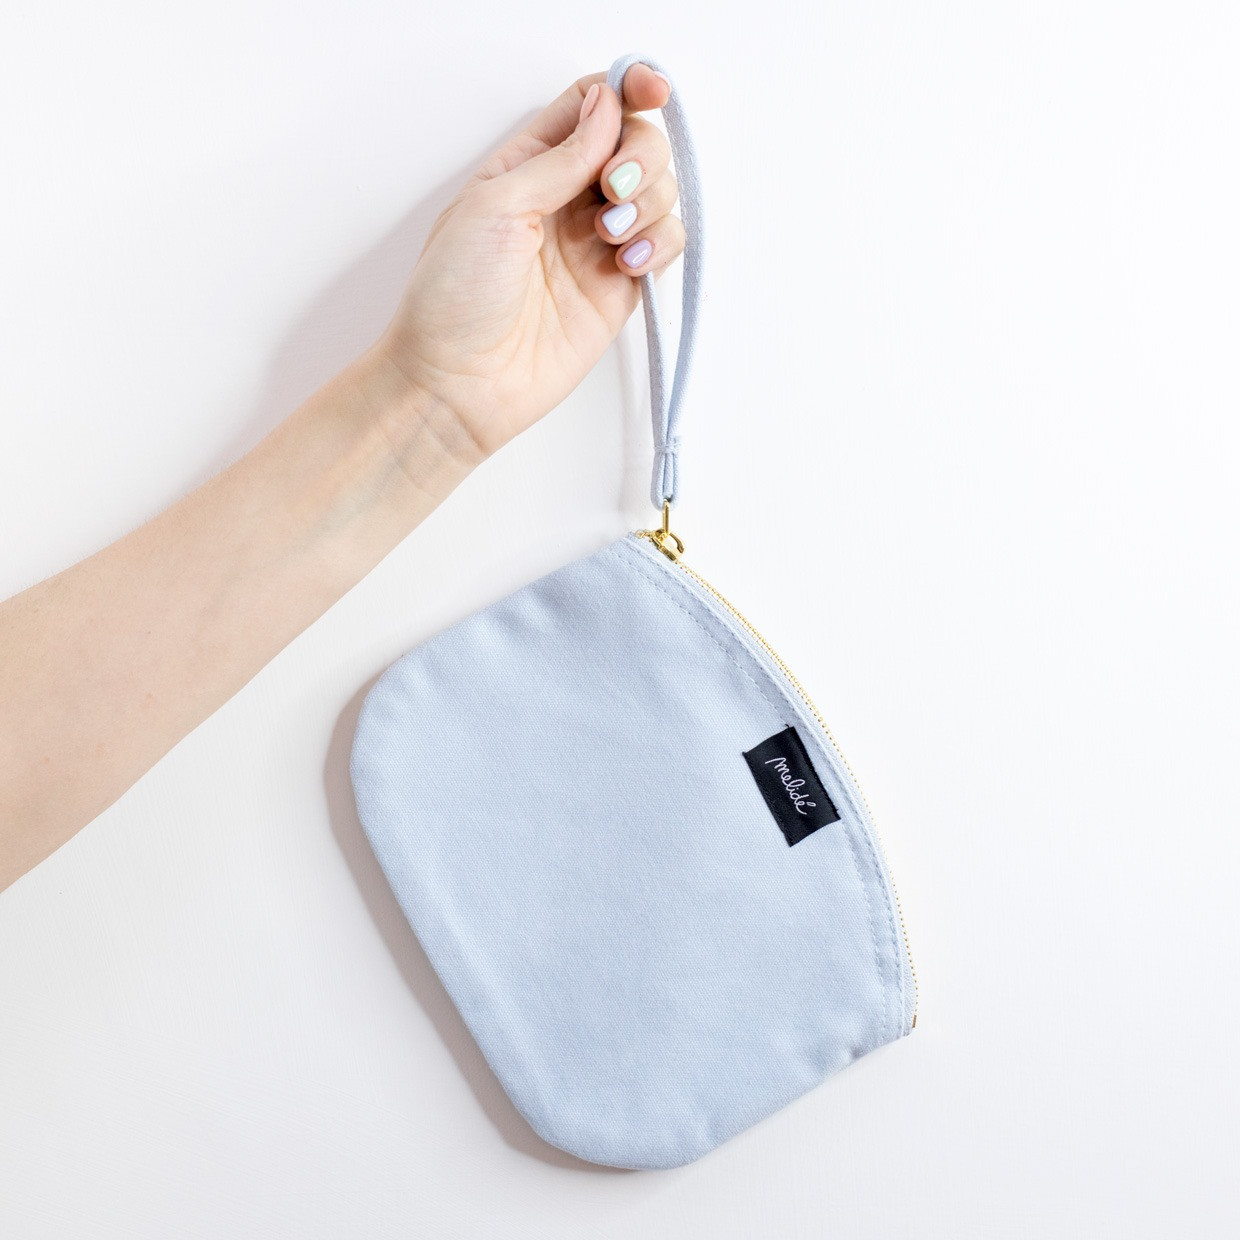 The ZIPPED POUCH M - Vergine